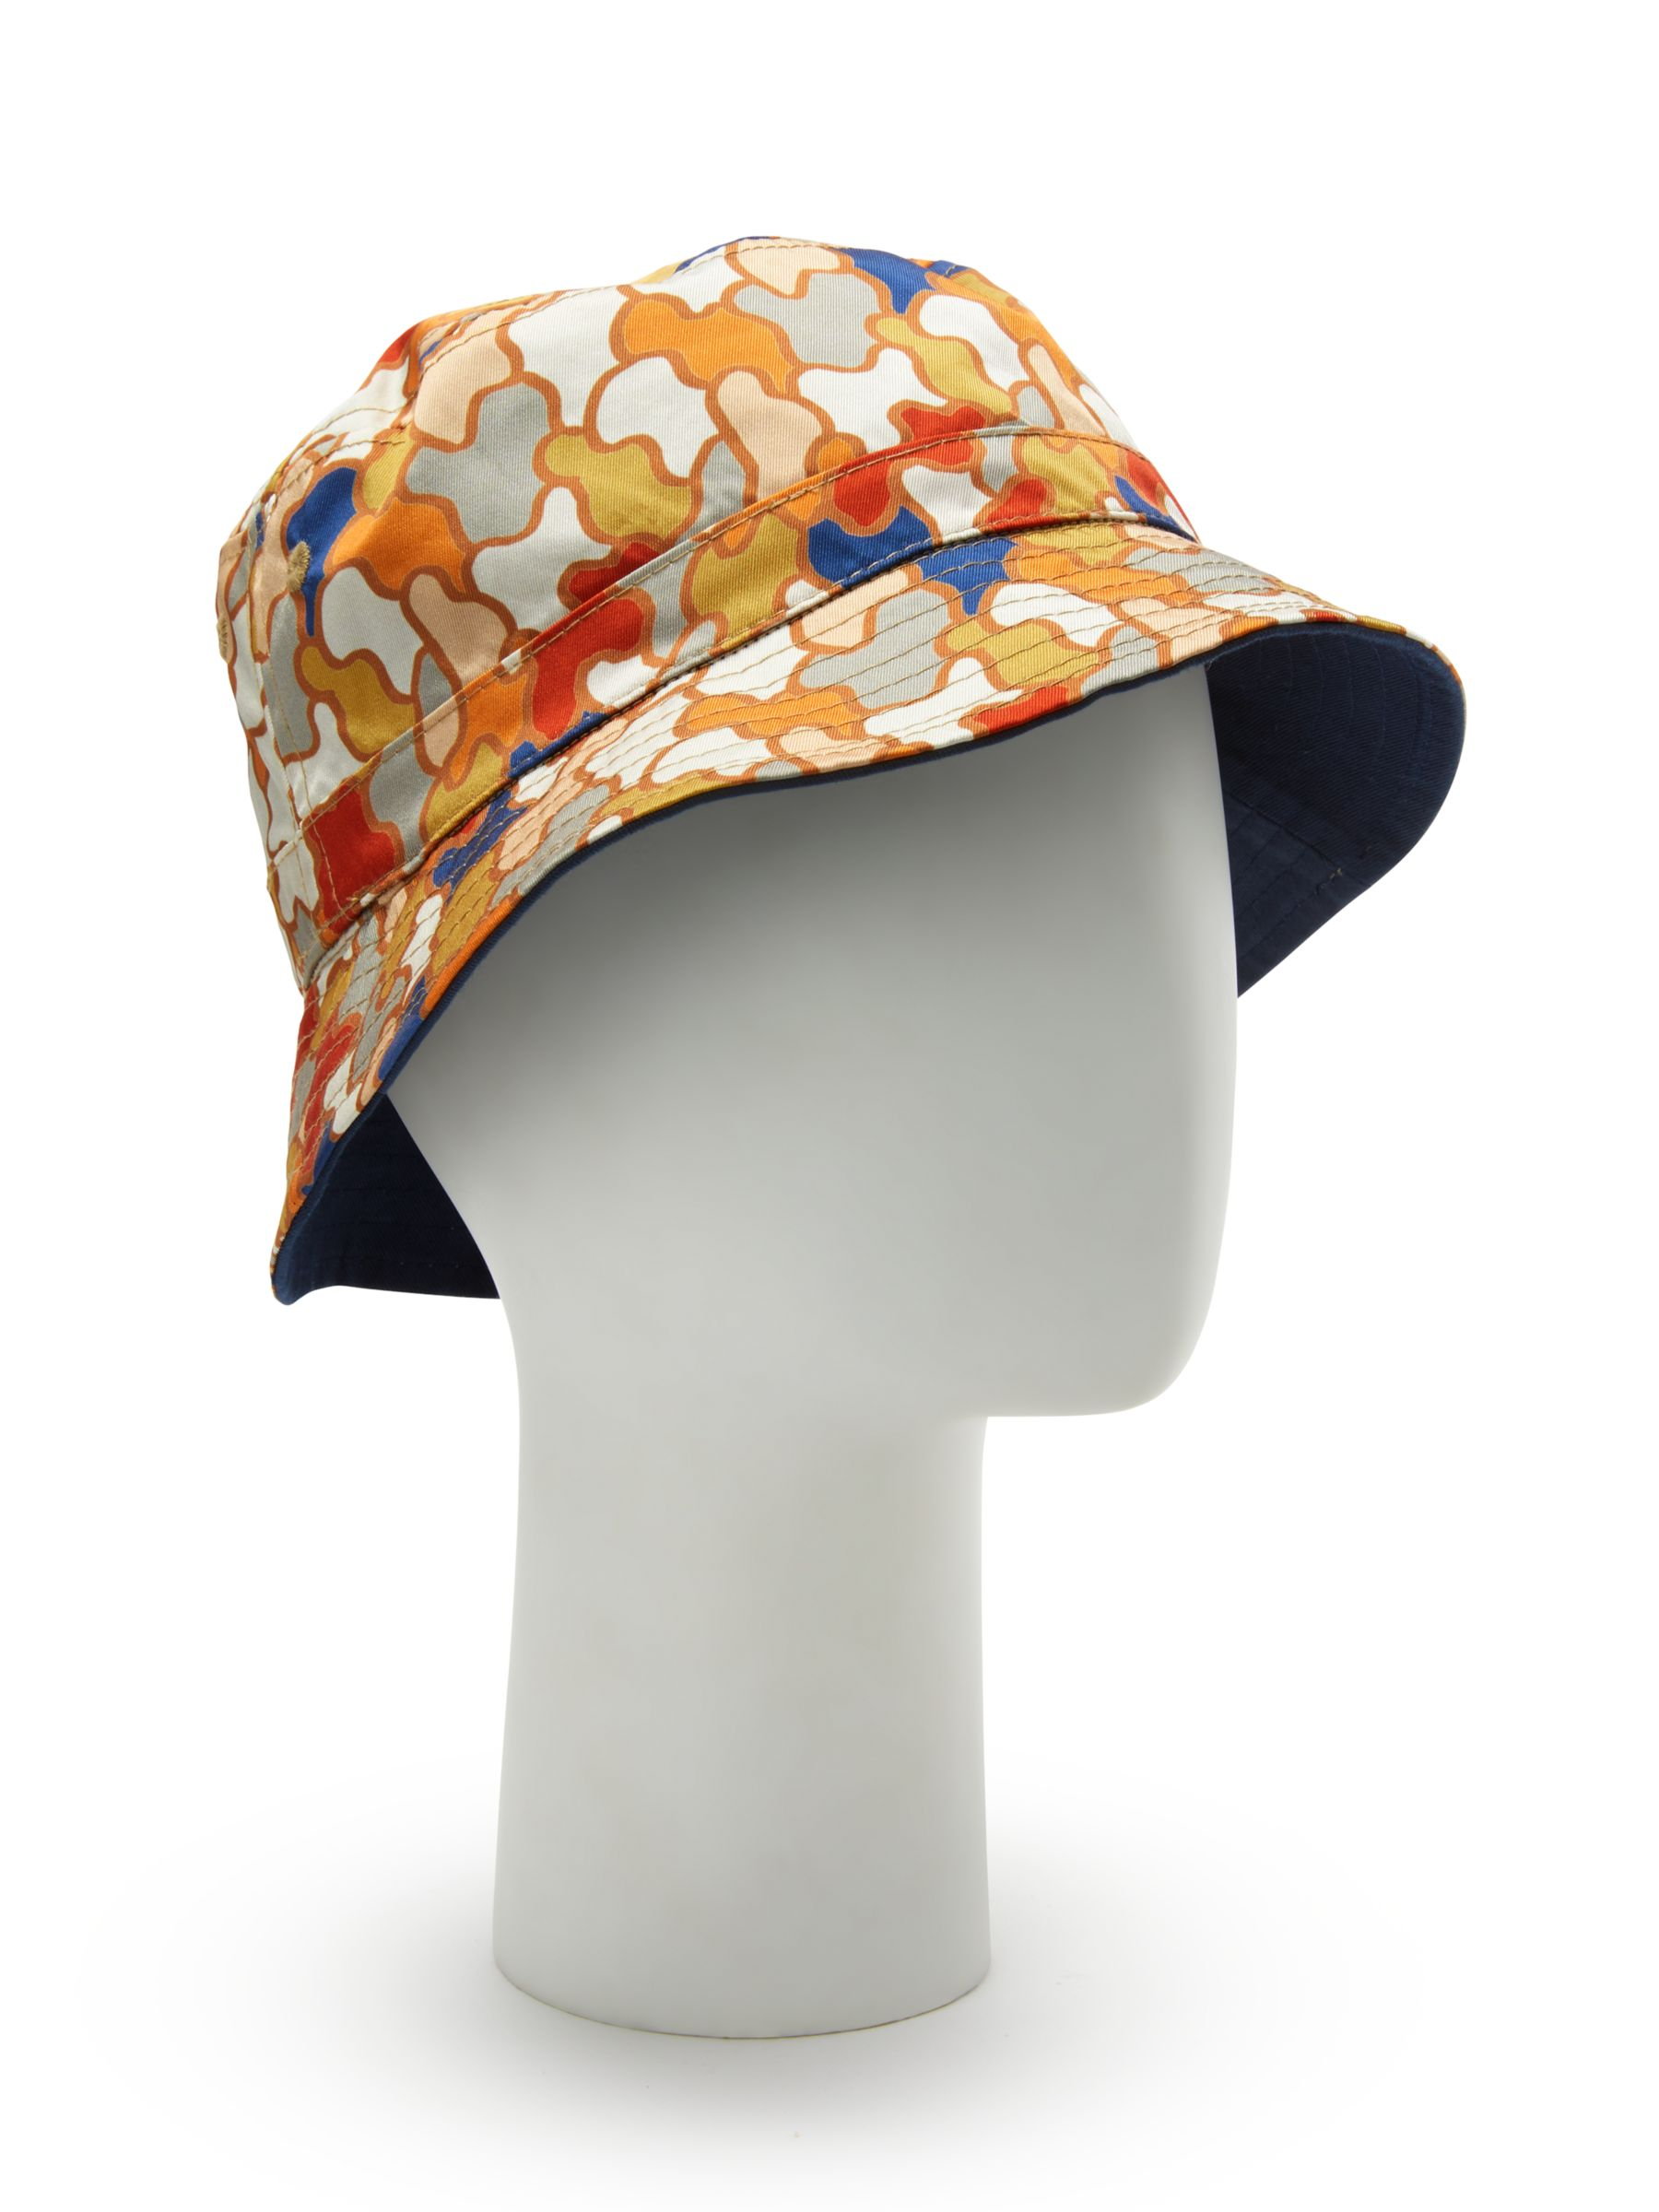 22dadc5ac3388 Far Afield Reversible Bucket Hat, Jazz Camo at John Lewis & Partners